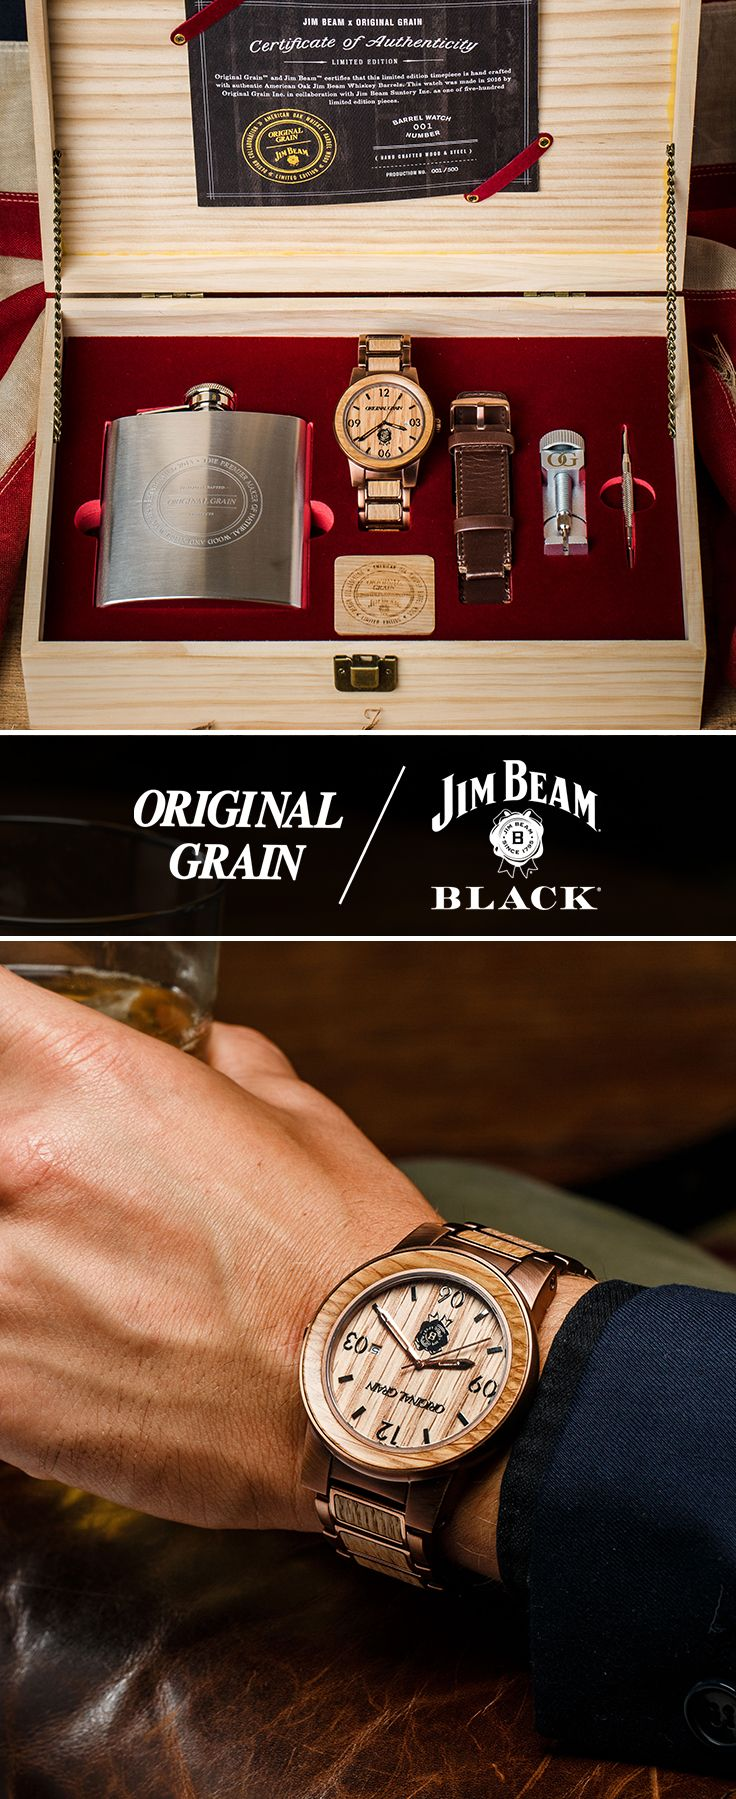 The Gentleman's Kit - Original Grain / Jim Beam Black Collaboration. Limited Edition Hand Crafted Watches With Reclaimed Jim Beam® Bourbon Barrels.